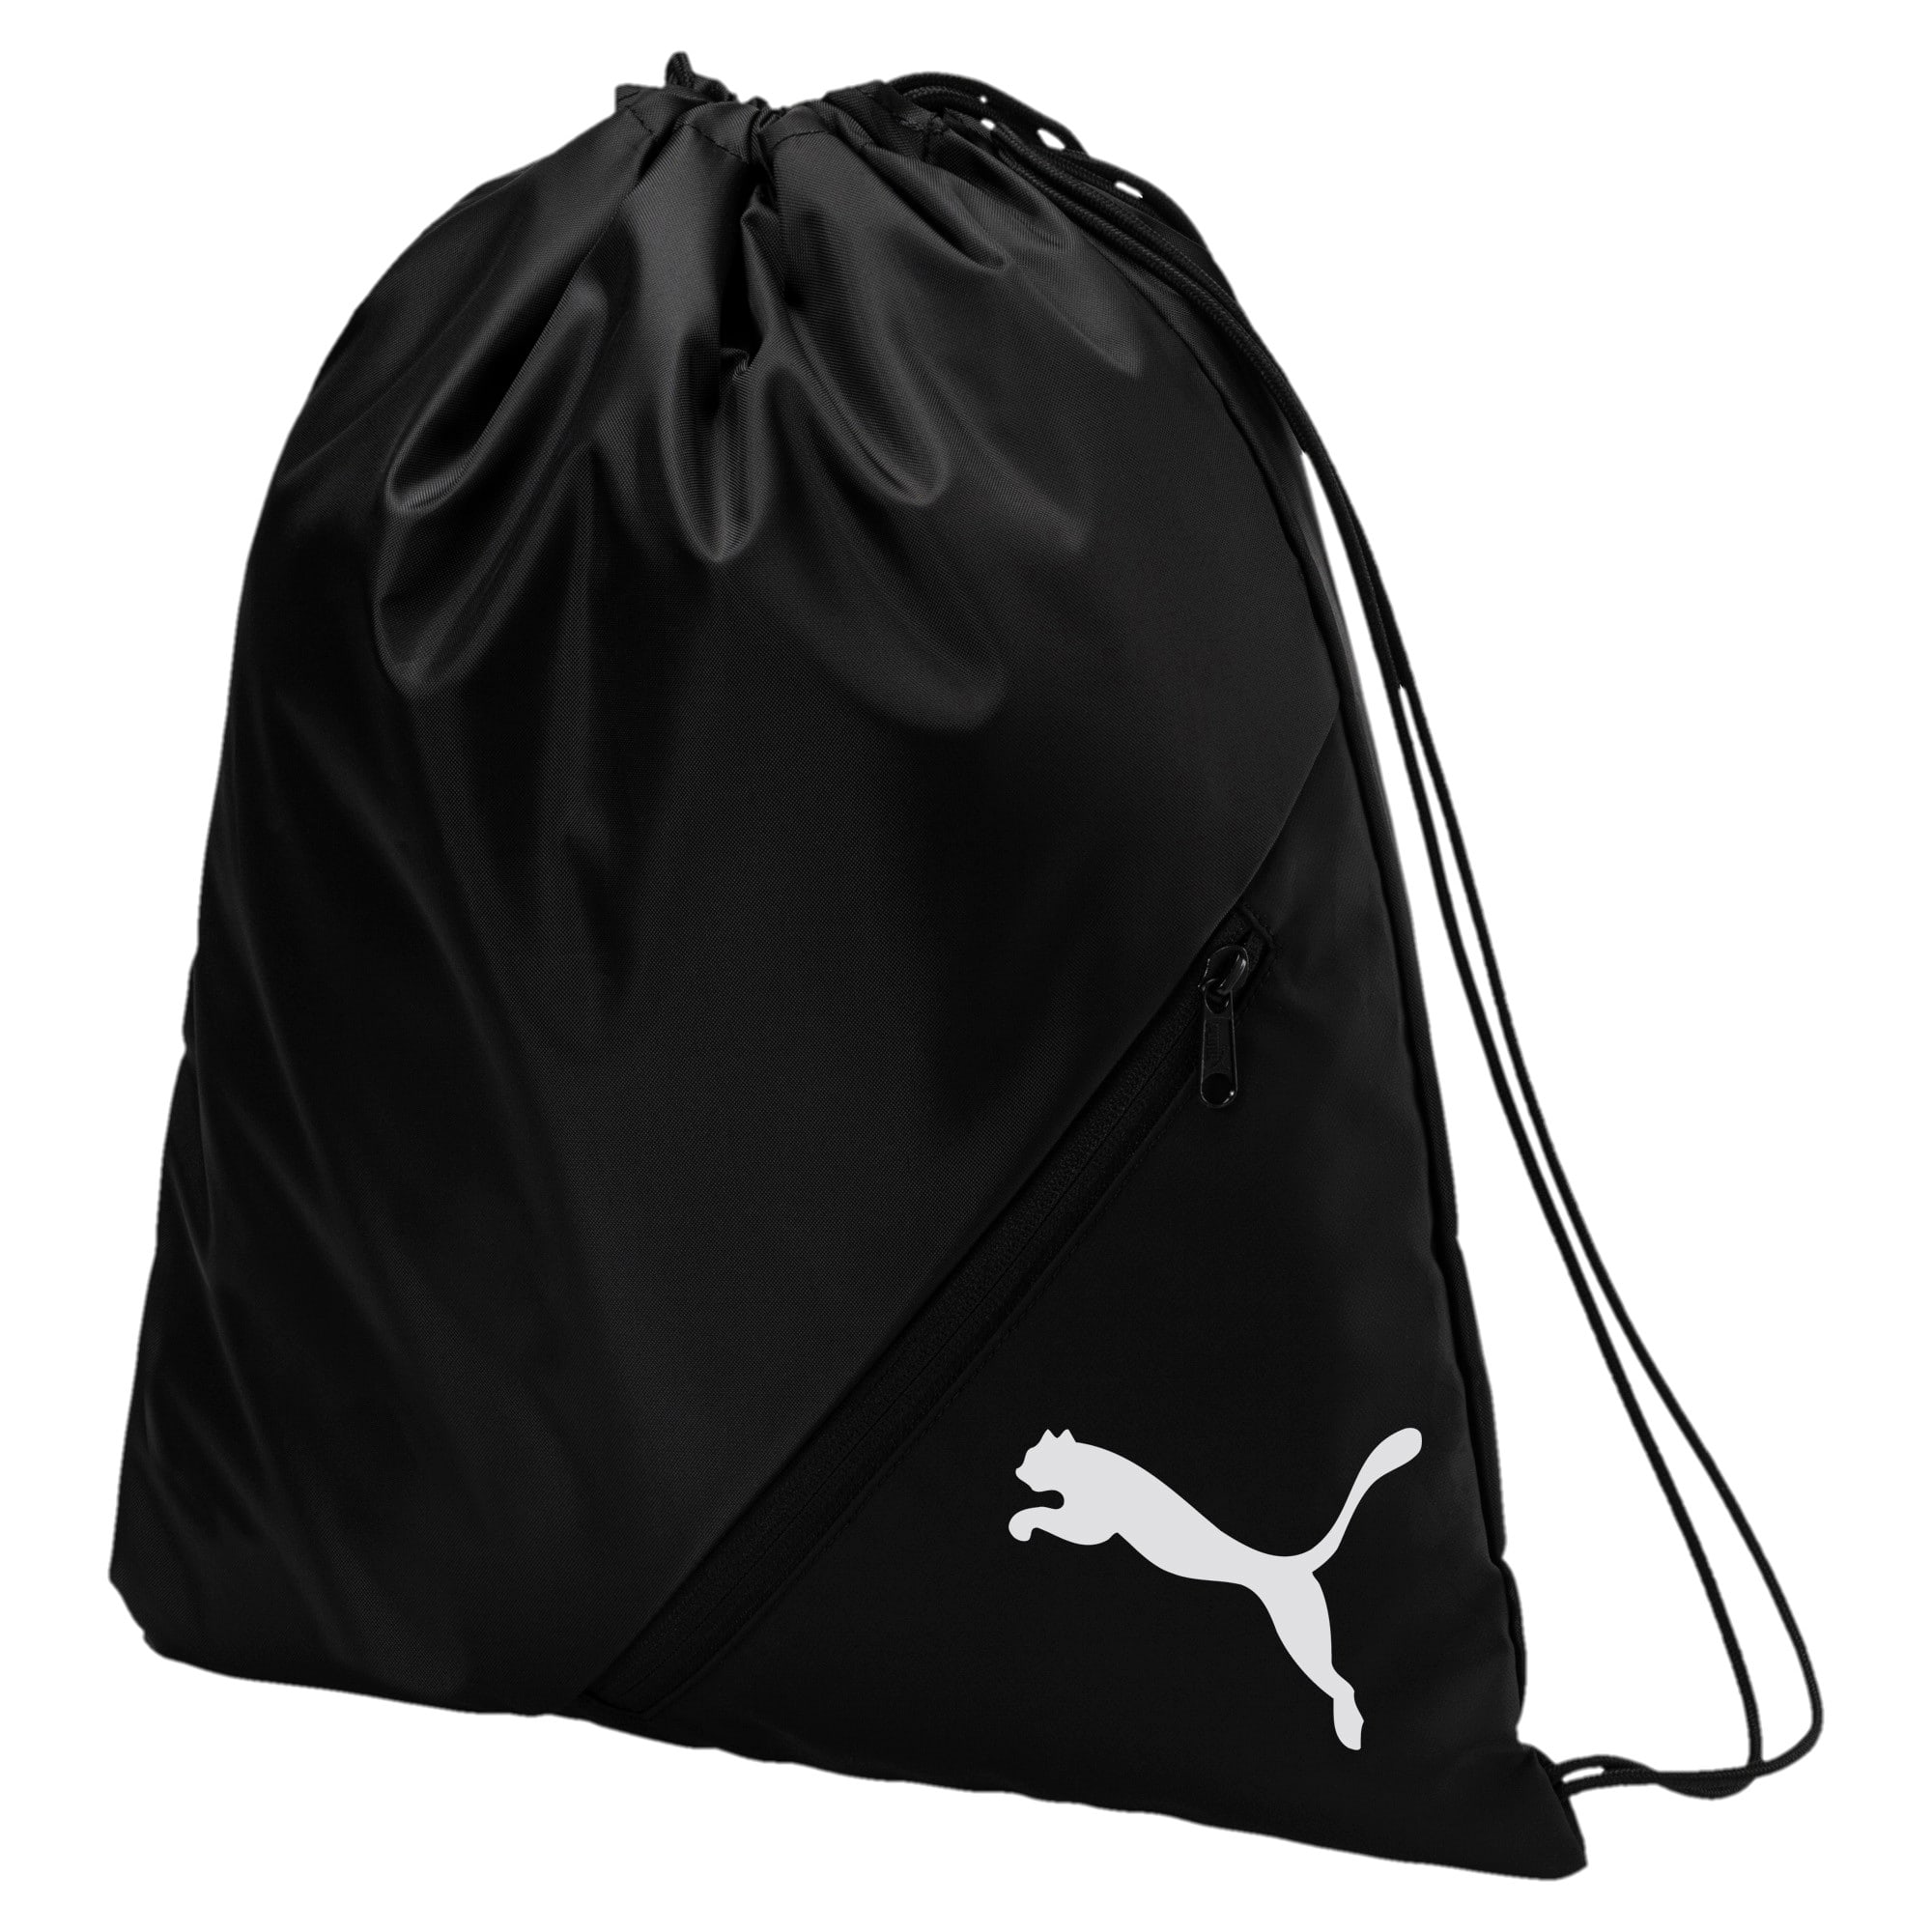 Thumbnail 1 of Liga Gym Sack, Puma Black, medium